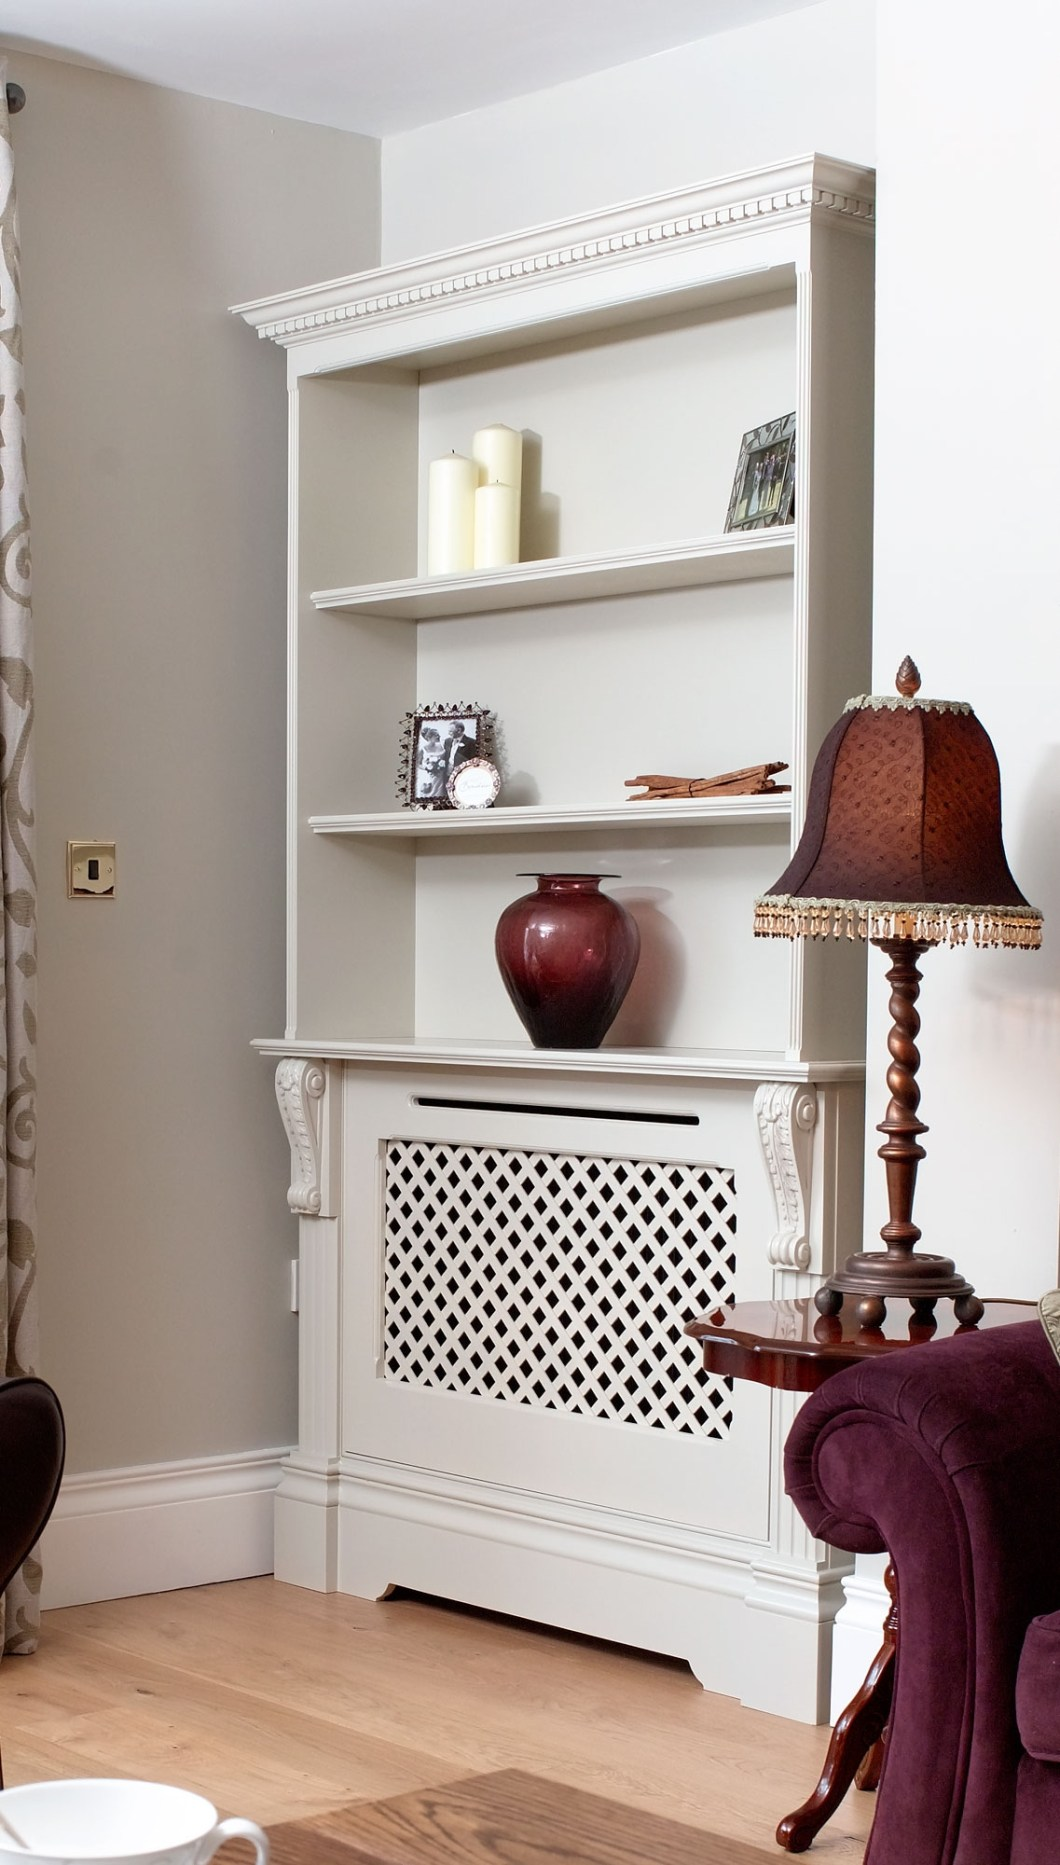 15 Inspirations Of Radiator Cover With Bookcase